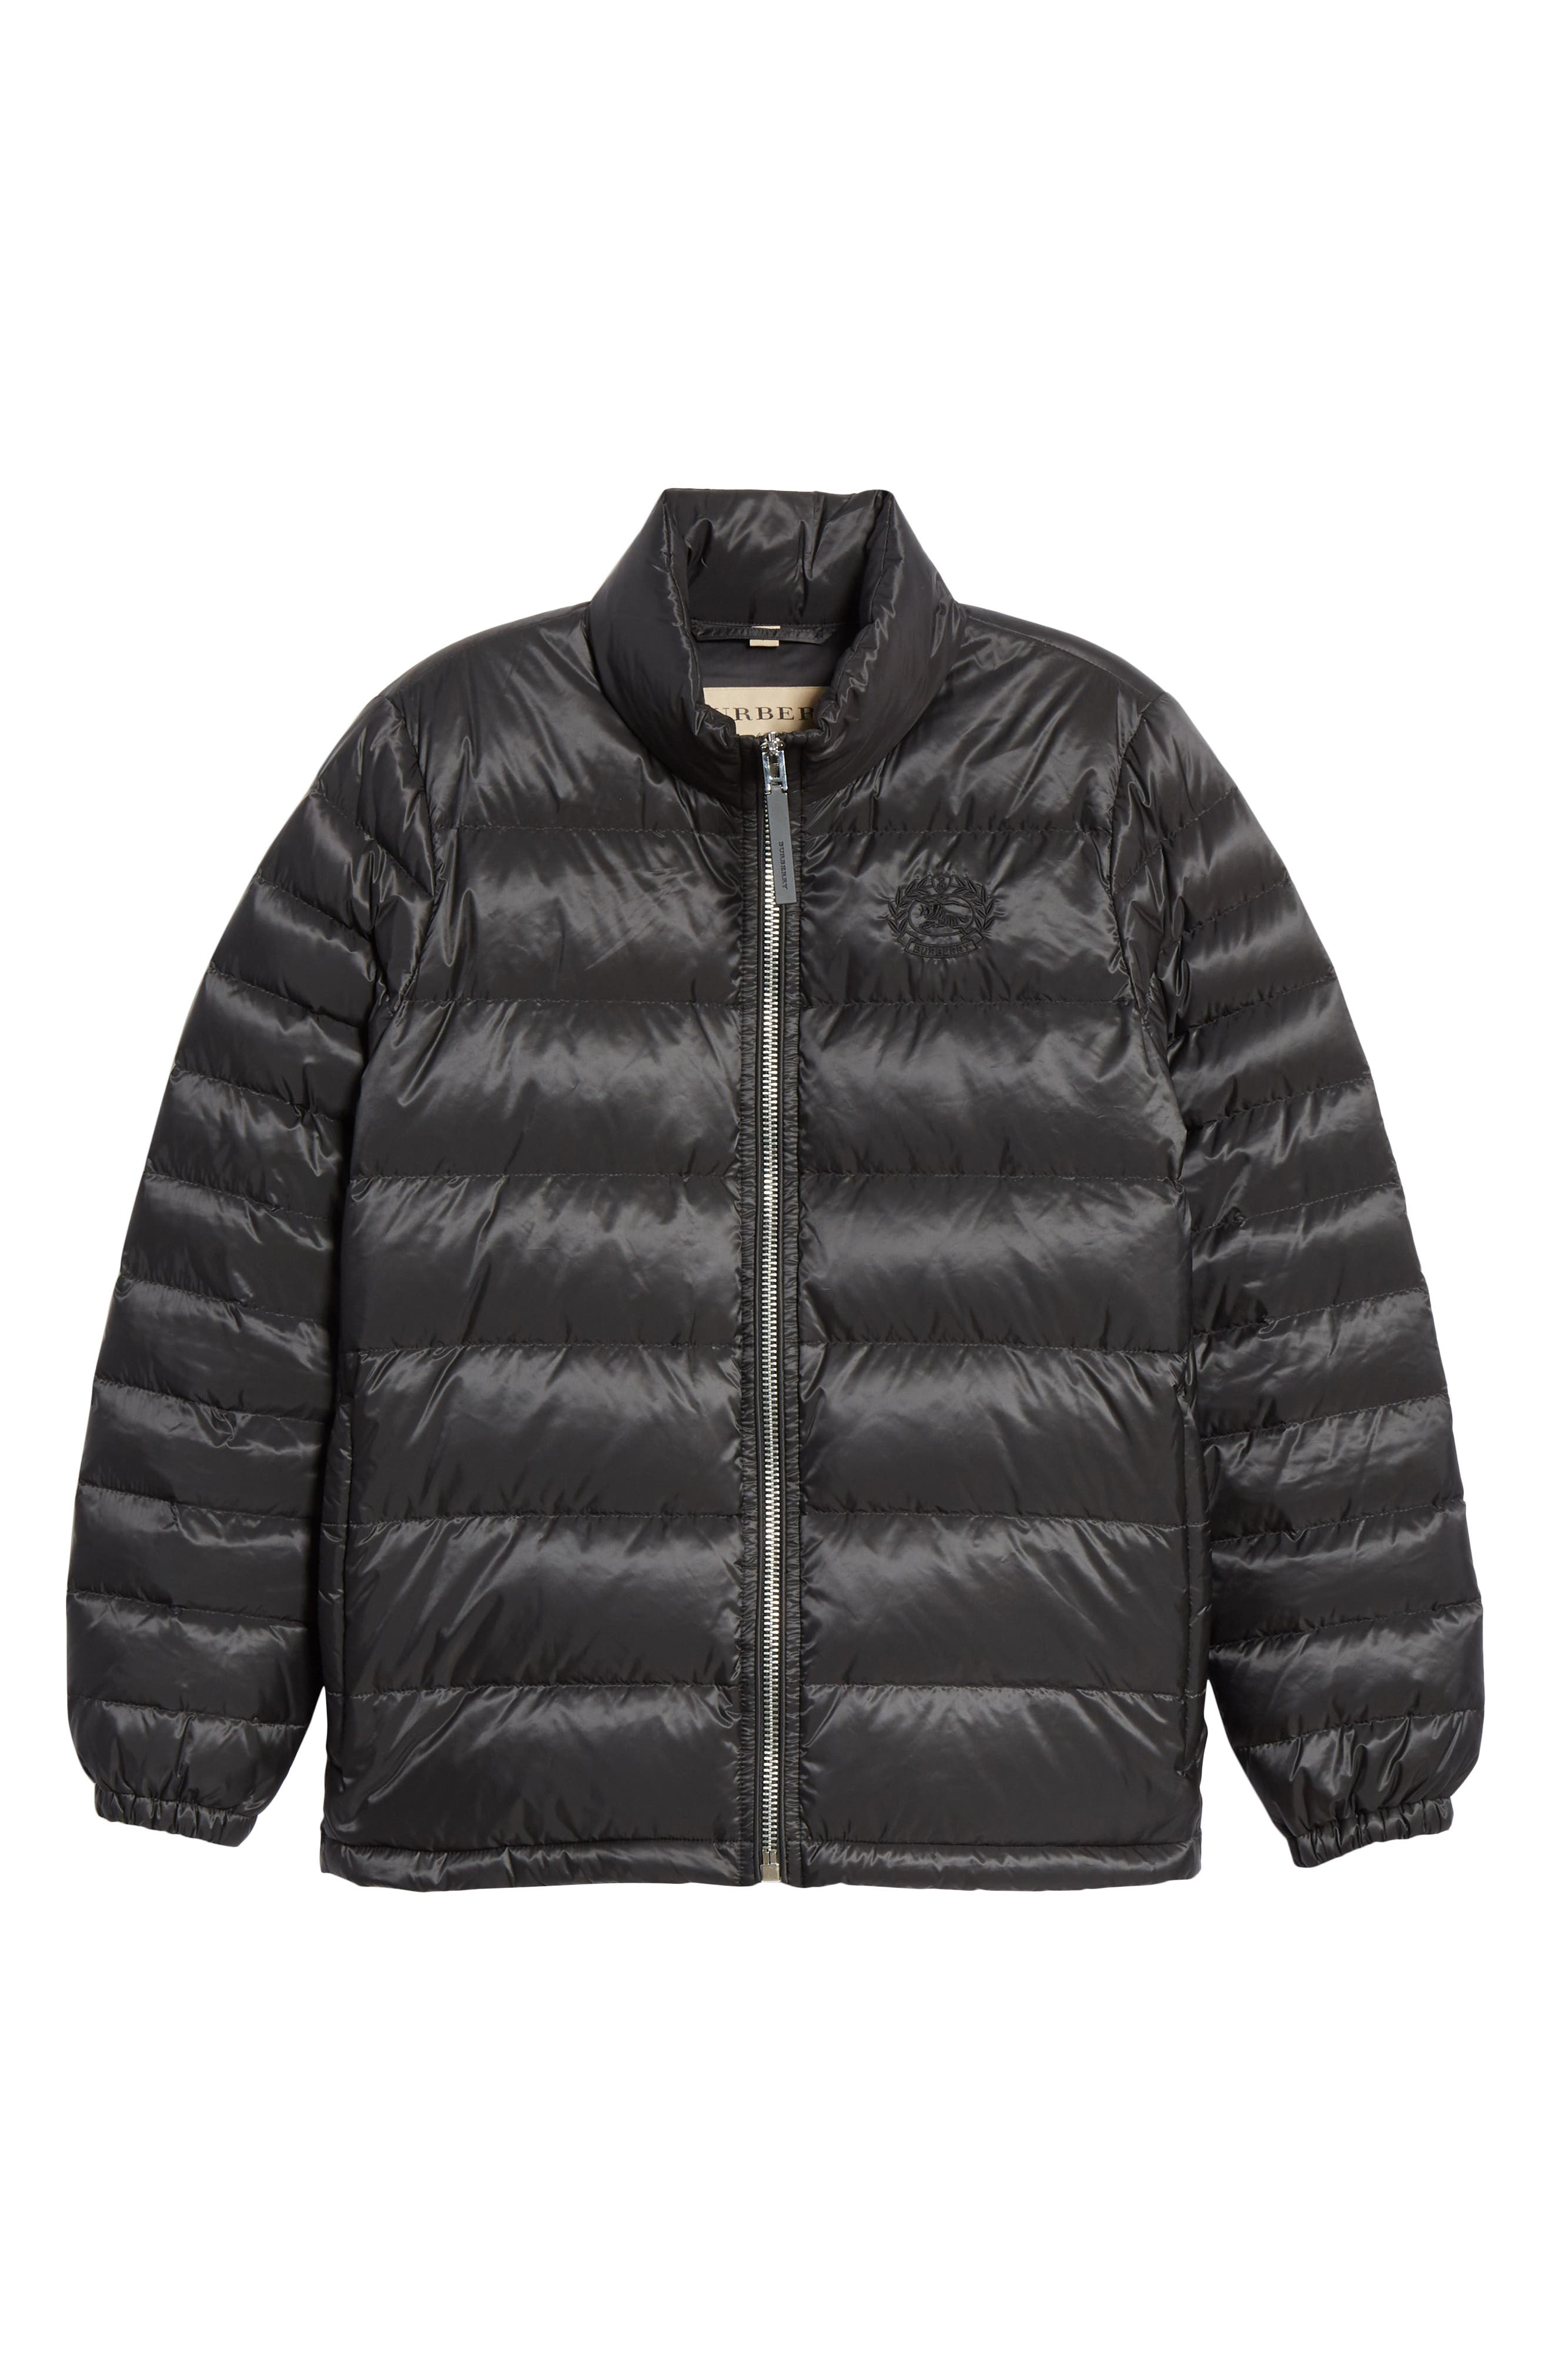 BURBERRY, Smethwick Archive Logo Quilted Down Puffer Coat, Alternate thumbnail 6, color, BLACK